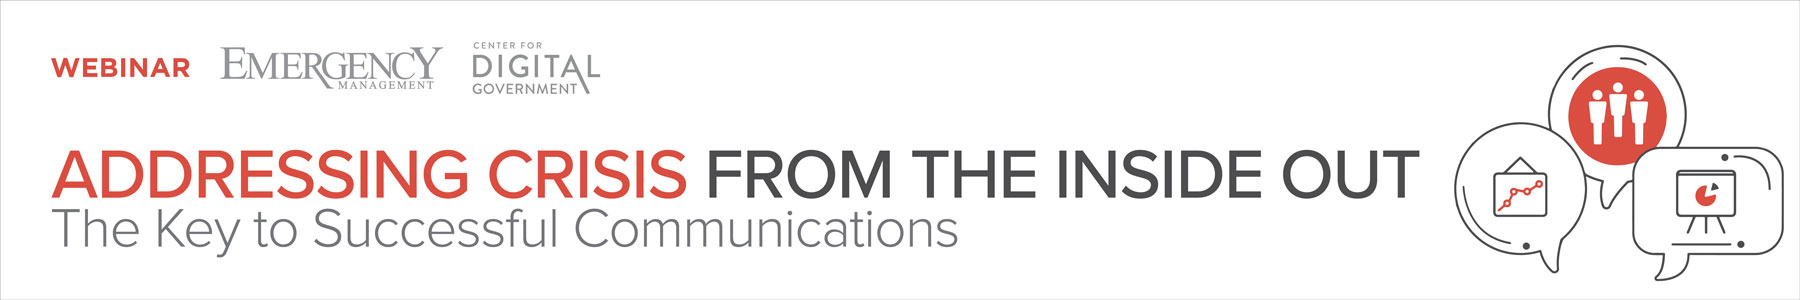 Addressing Crisis From the Inside Out: The Key to Successful Communications